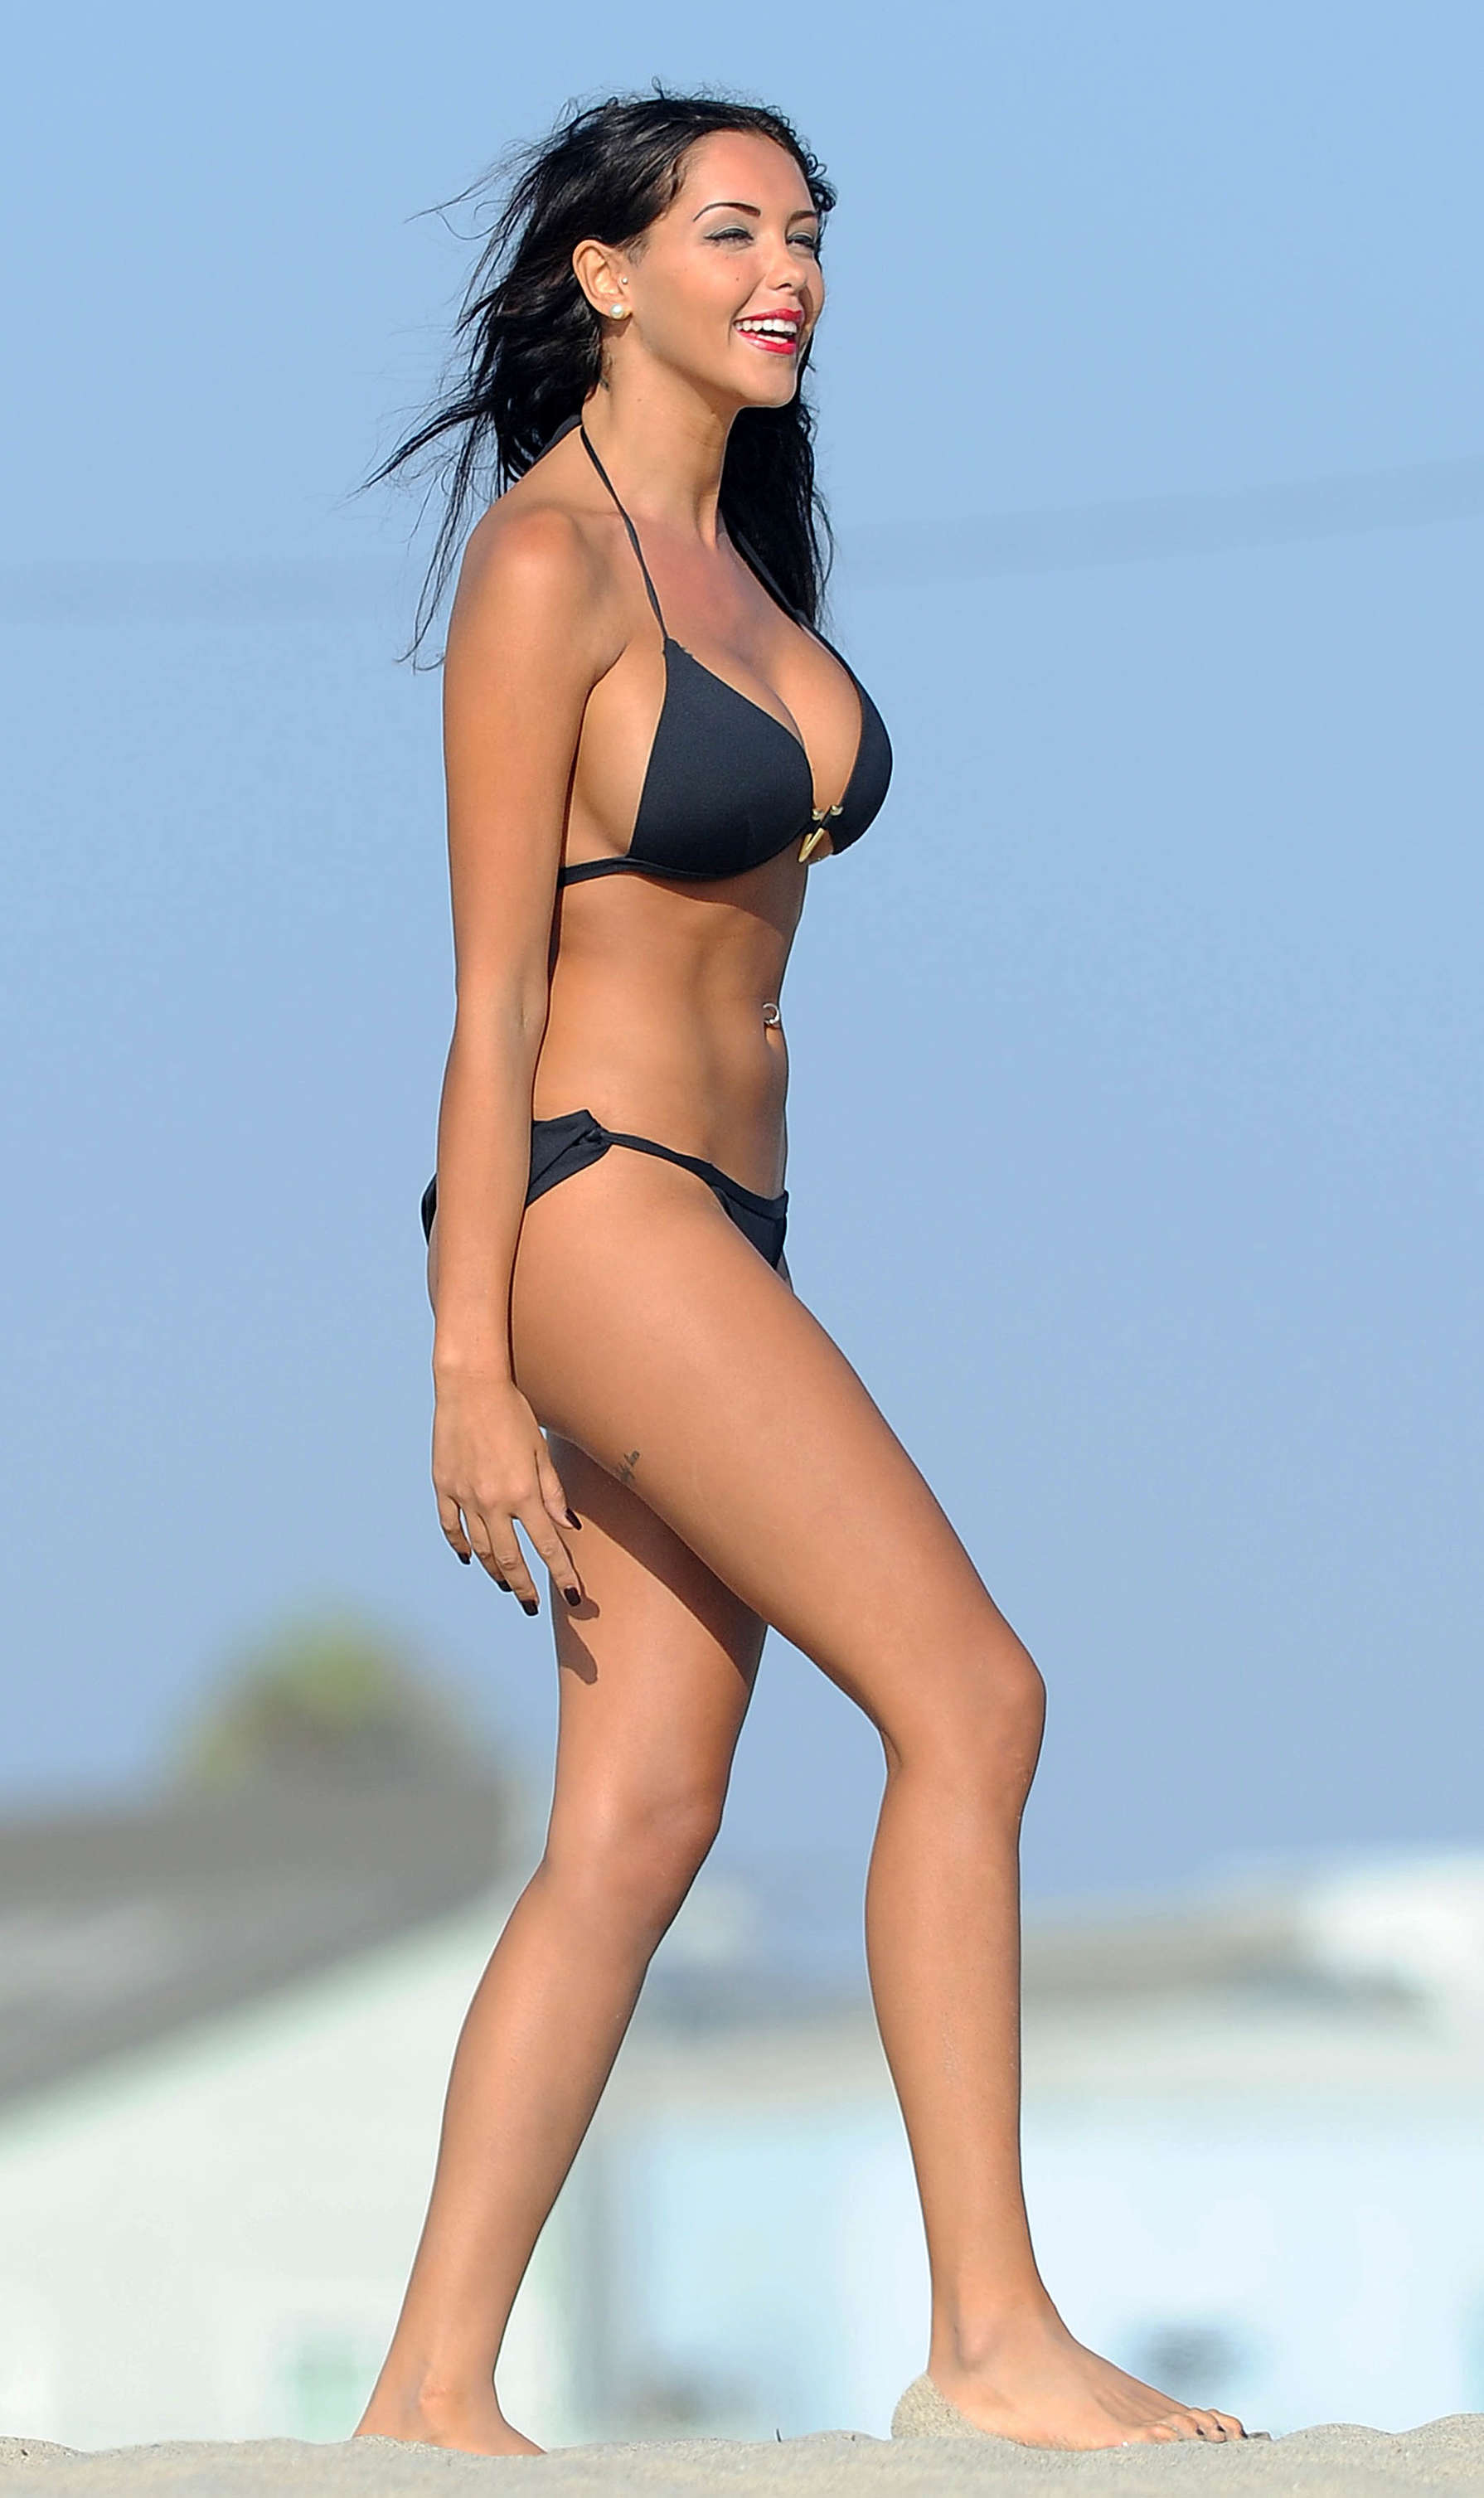 Nabilla-Benattia-Bikini-Photos-in-LA-32.